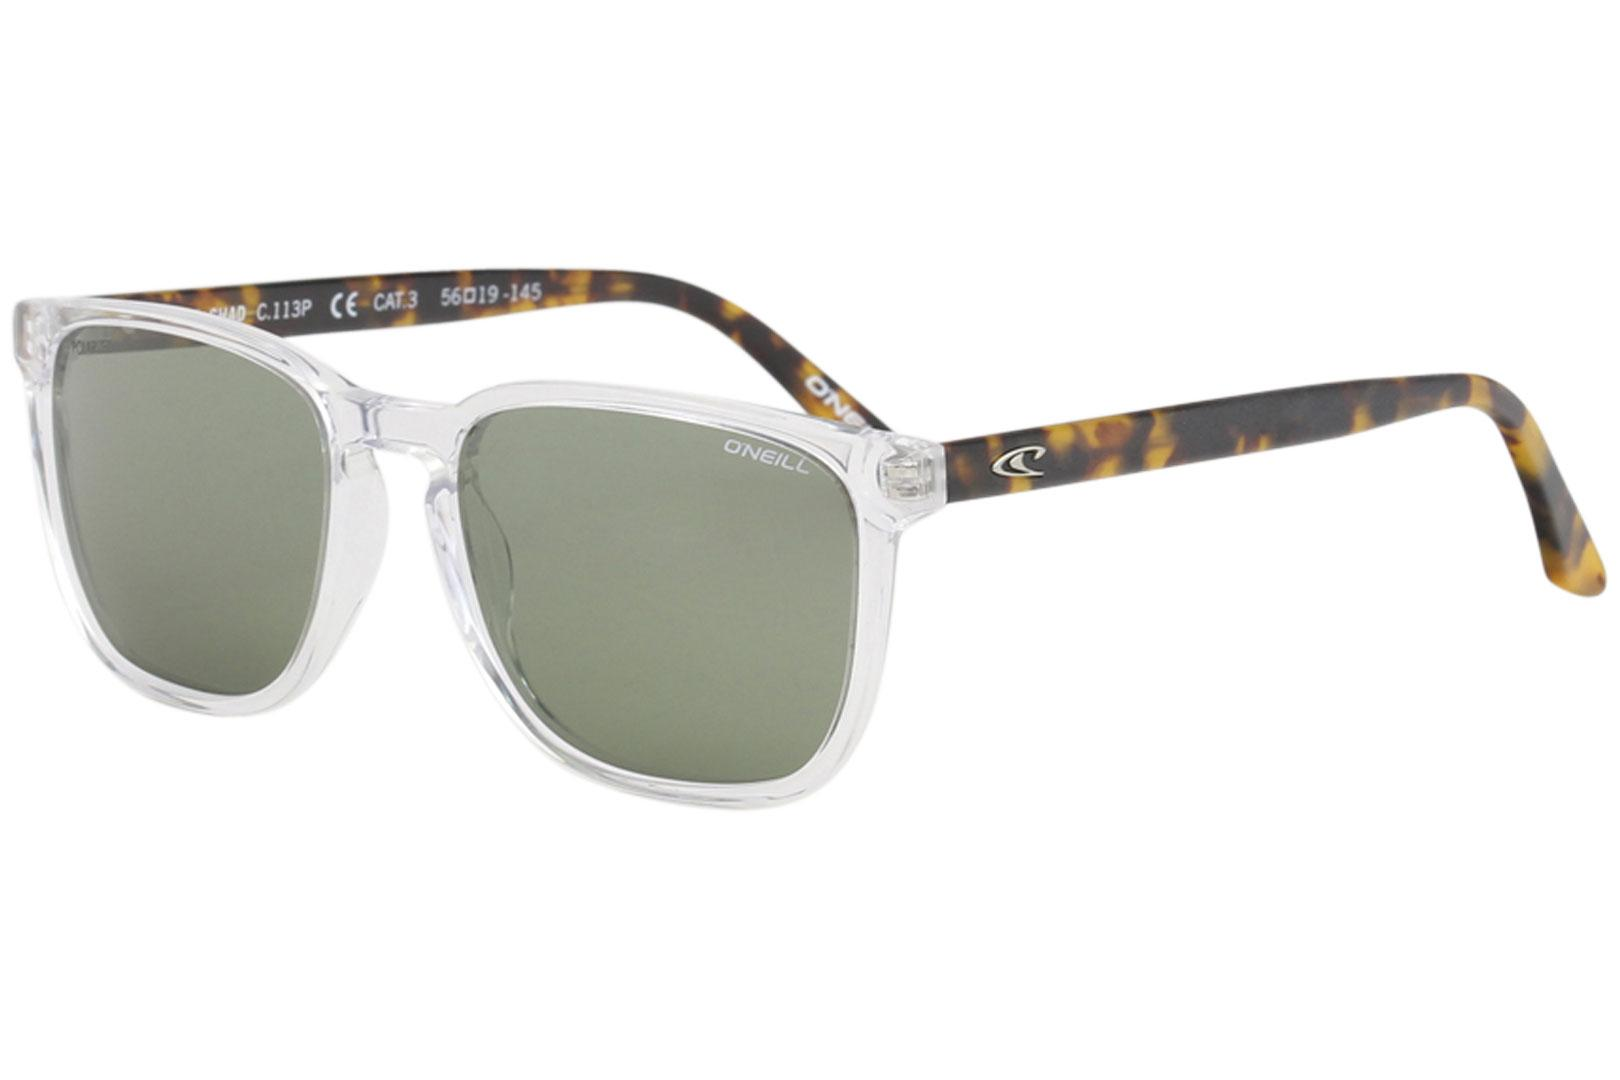 Image of O'Neill Men's Ons Chad Fashion Square Sunglasses - Crystal Tortoise/Green Polarized   113 P - Lens 56 Bridge 19 Temple 145mm